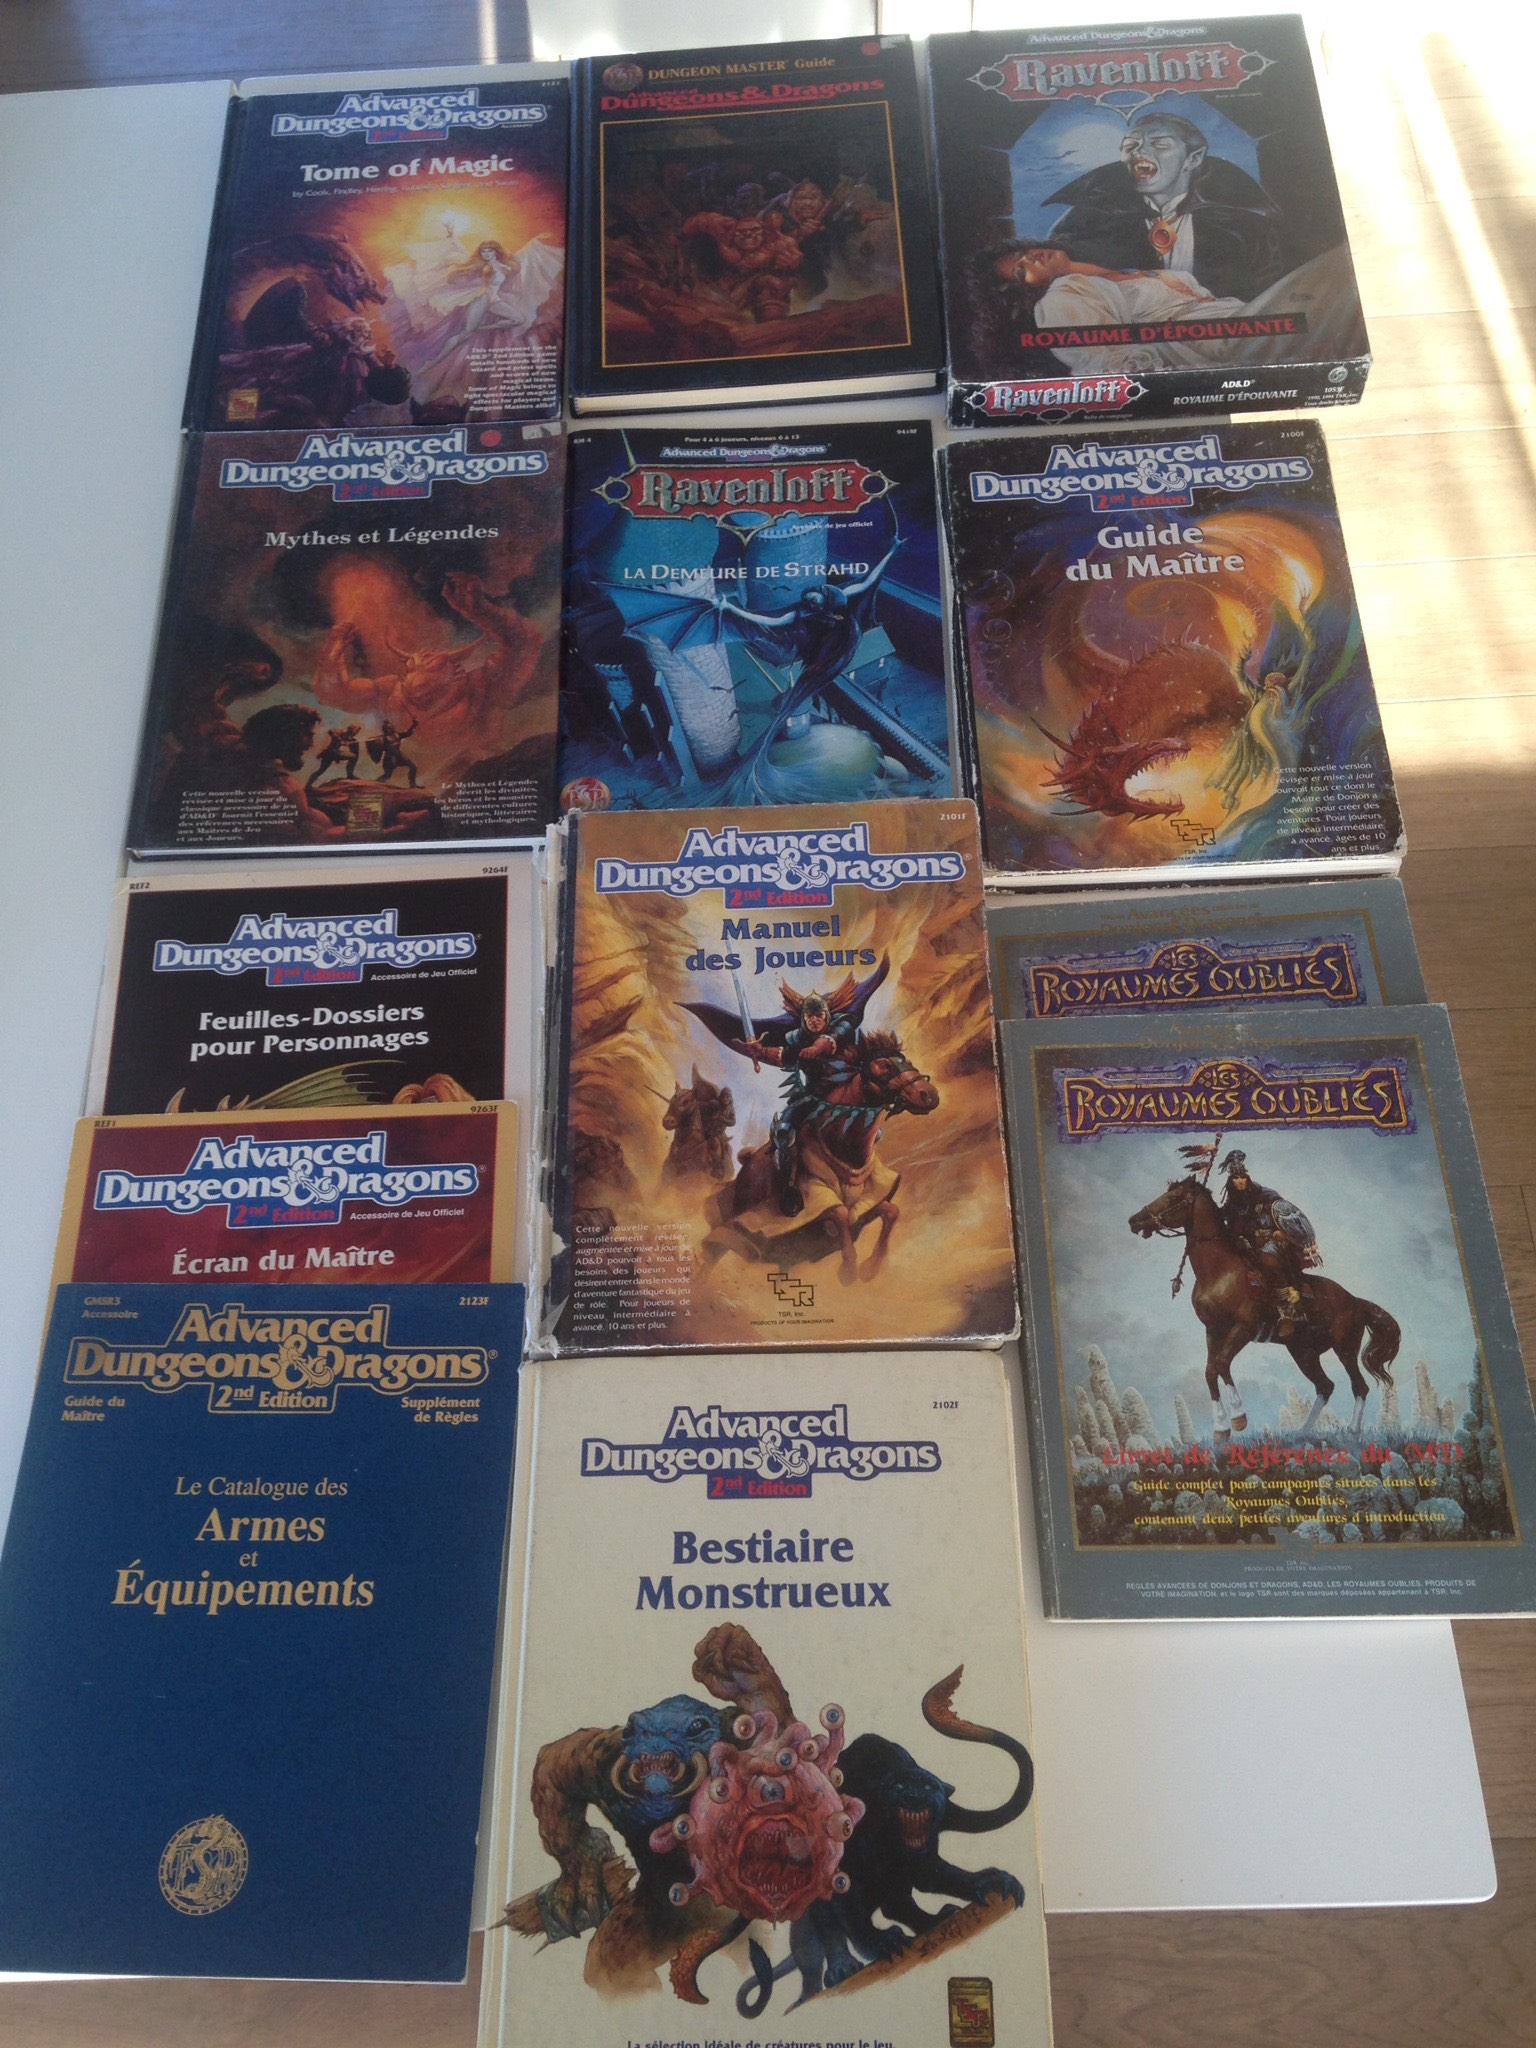 Advanced Dungeons Dragons 2eme édition